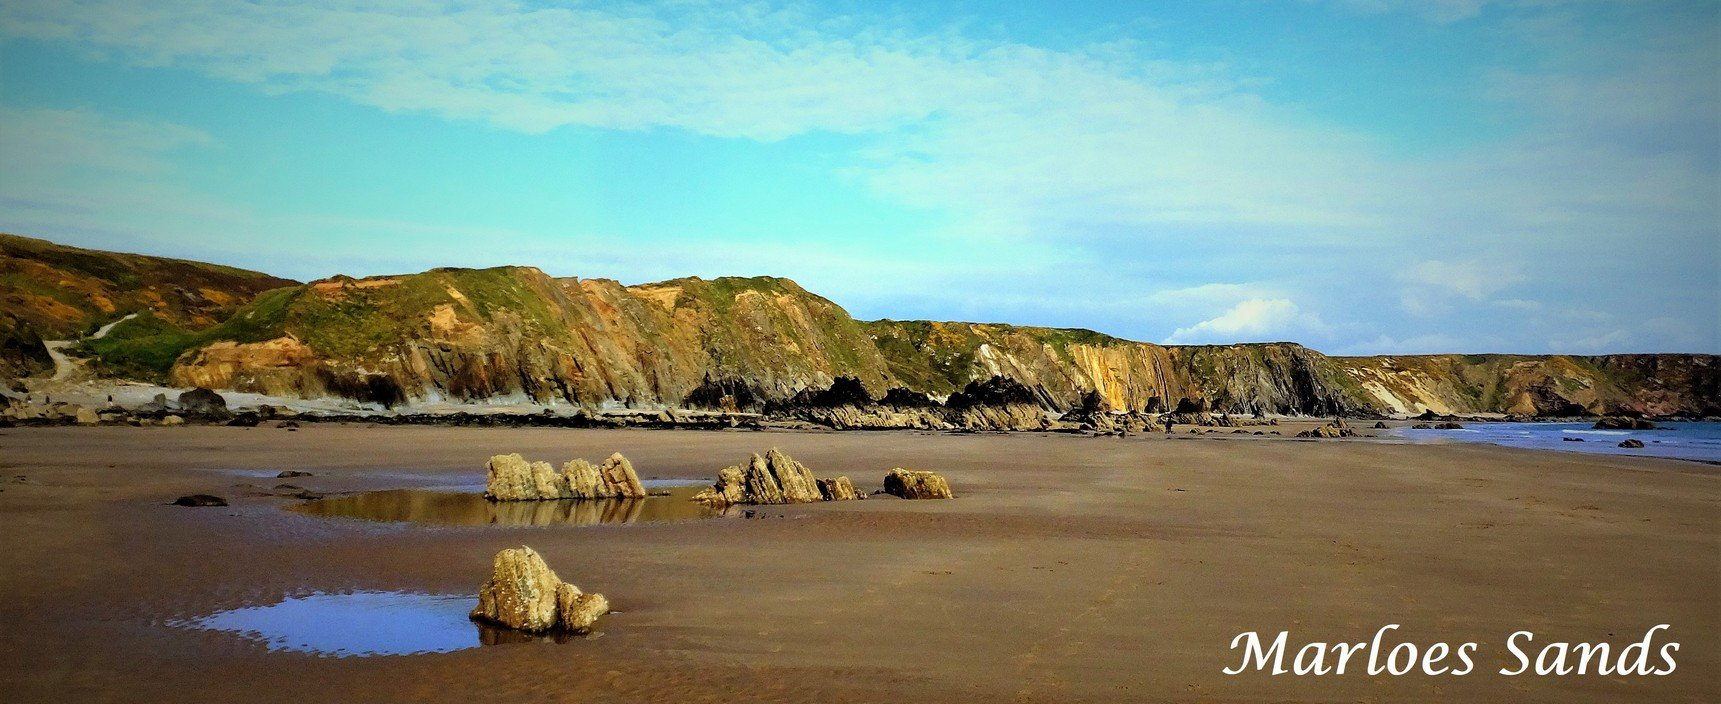 11_Marloes Sands